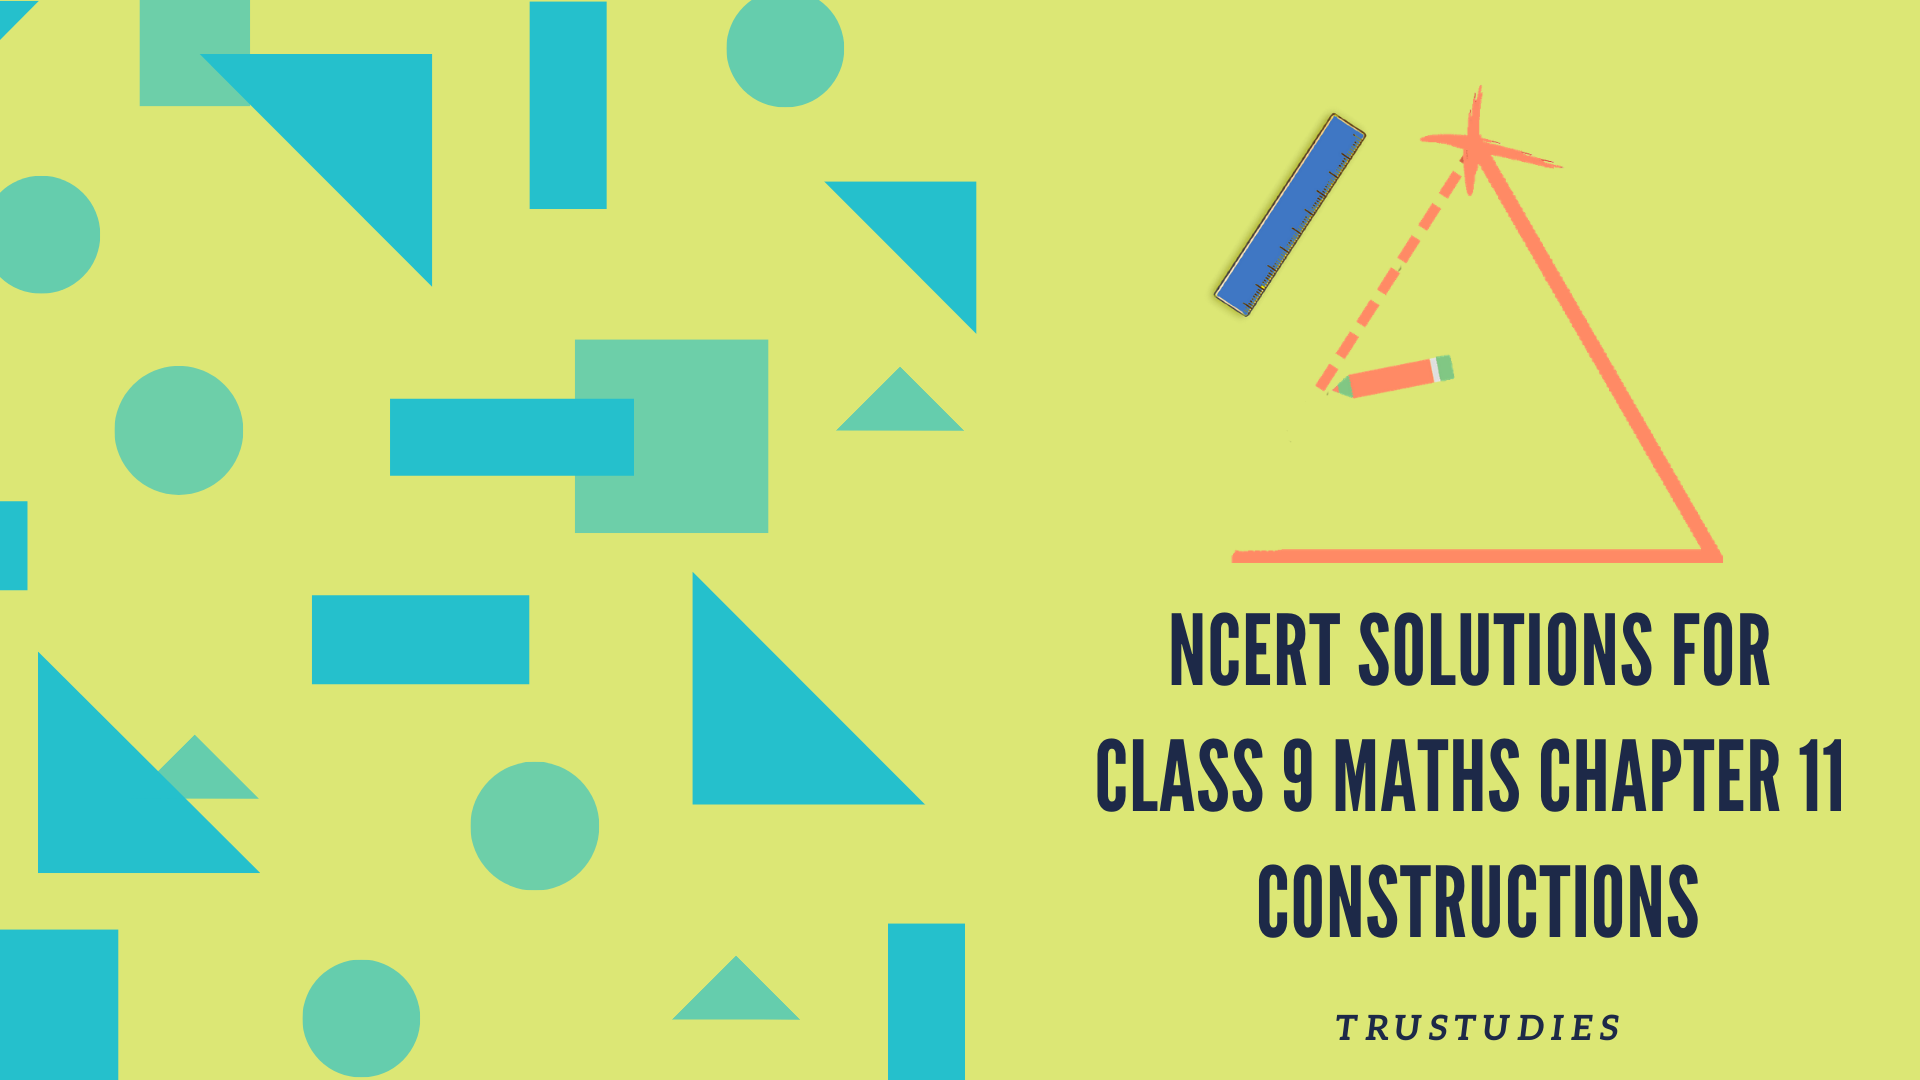 NCERT solutions for class 9 maths chapter 11 constructions banner image